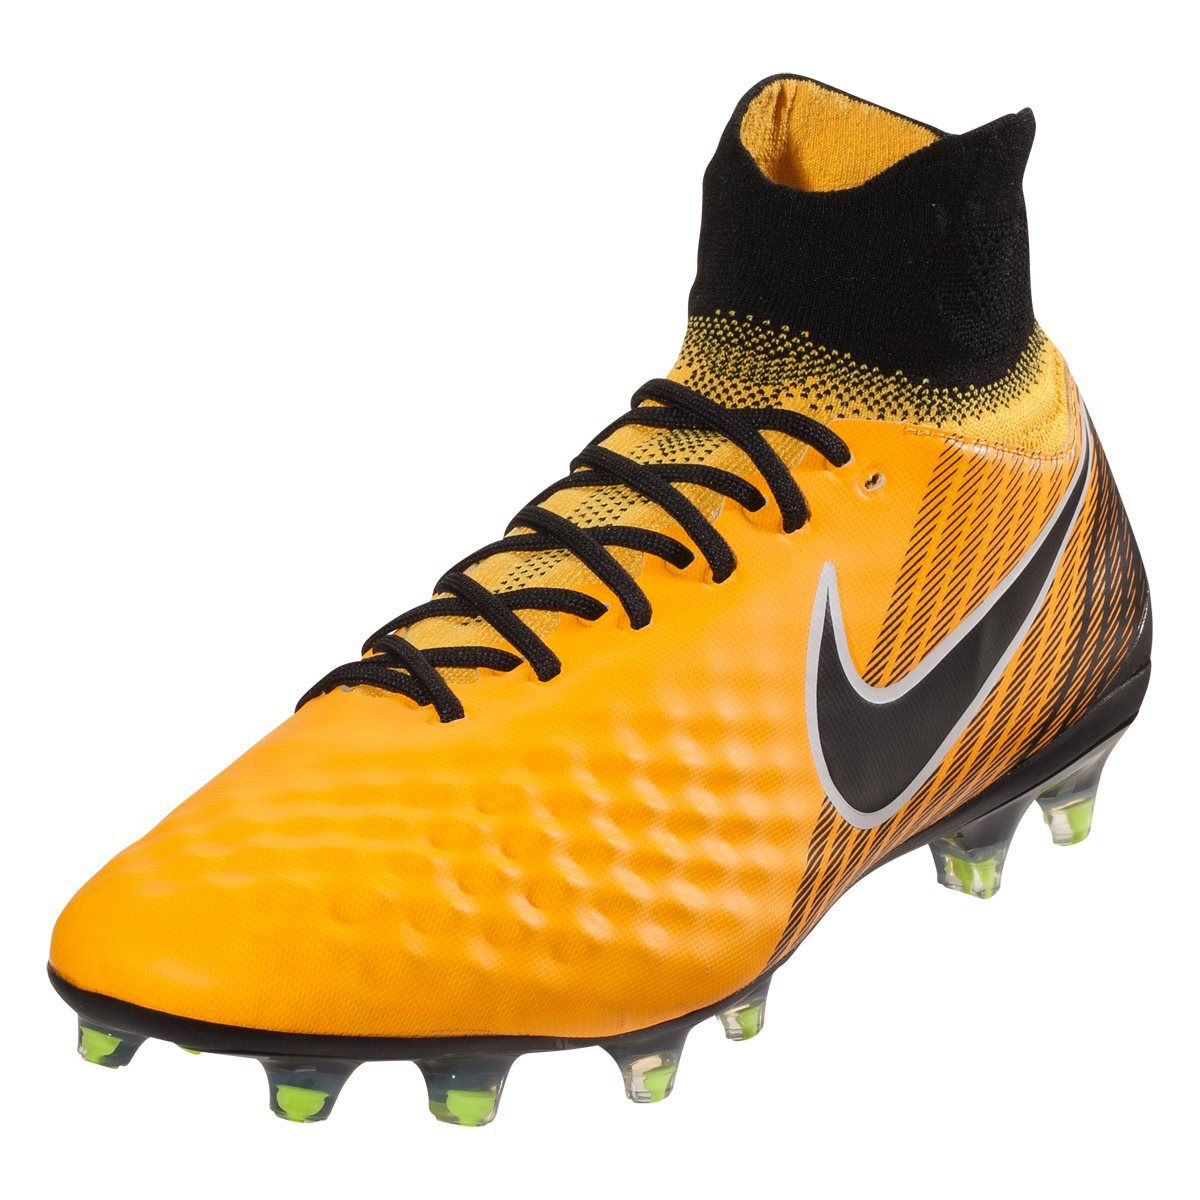 e8ae824ed7f9a Nike Magista Orden II DF FG Soccer Cleat - Laser Orange/White/Black ...